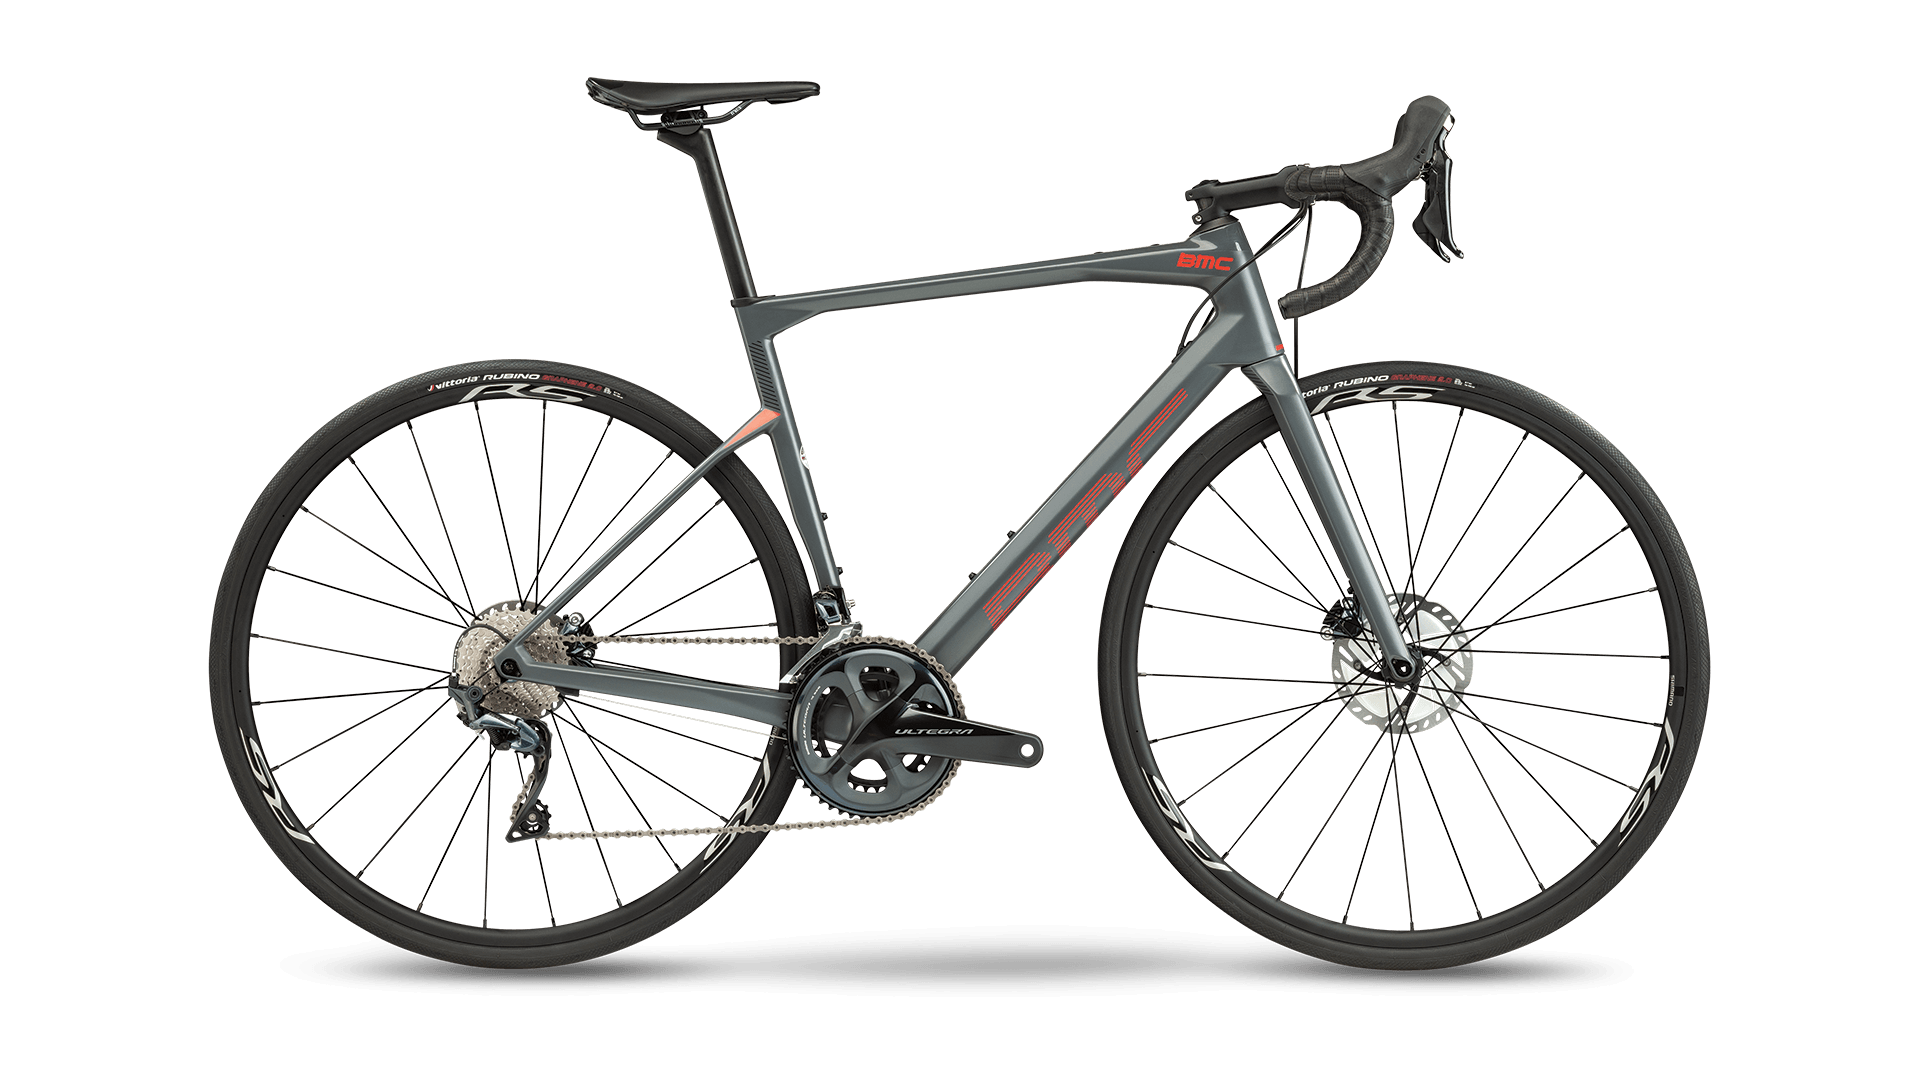 Bicicleta de Ruta Roadmachine Three - BMC - BMC Colombia